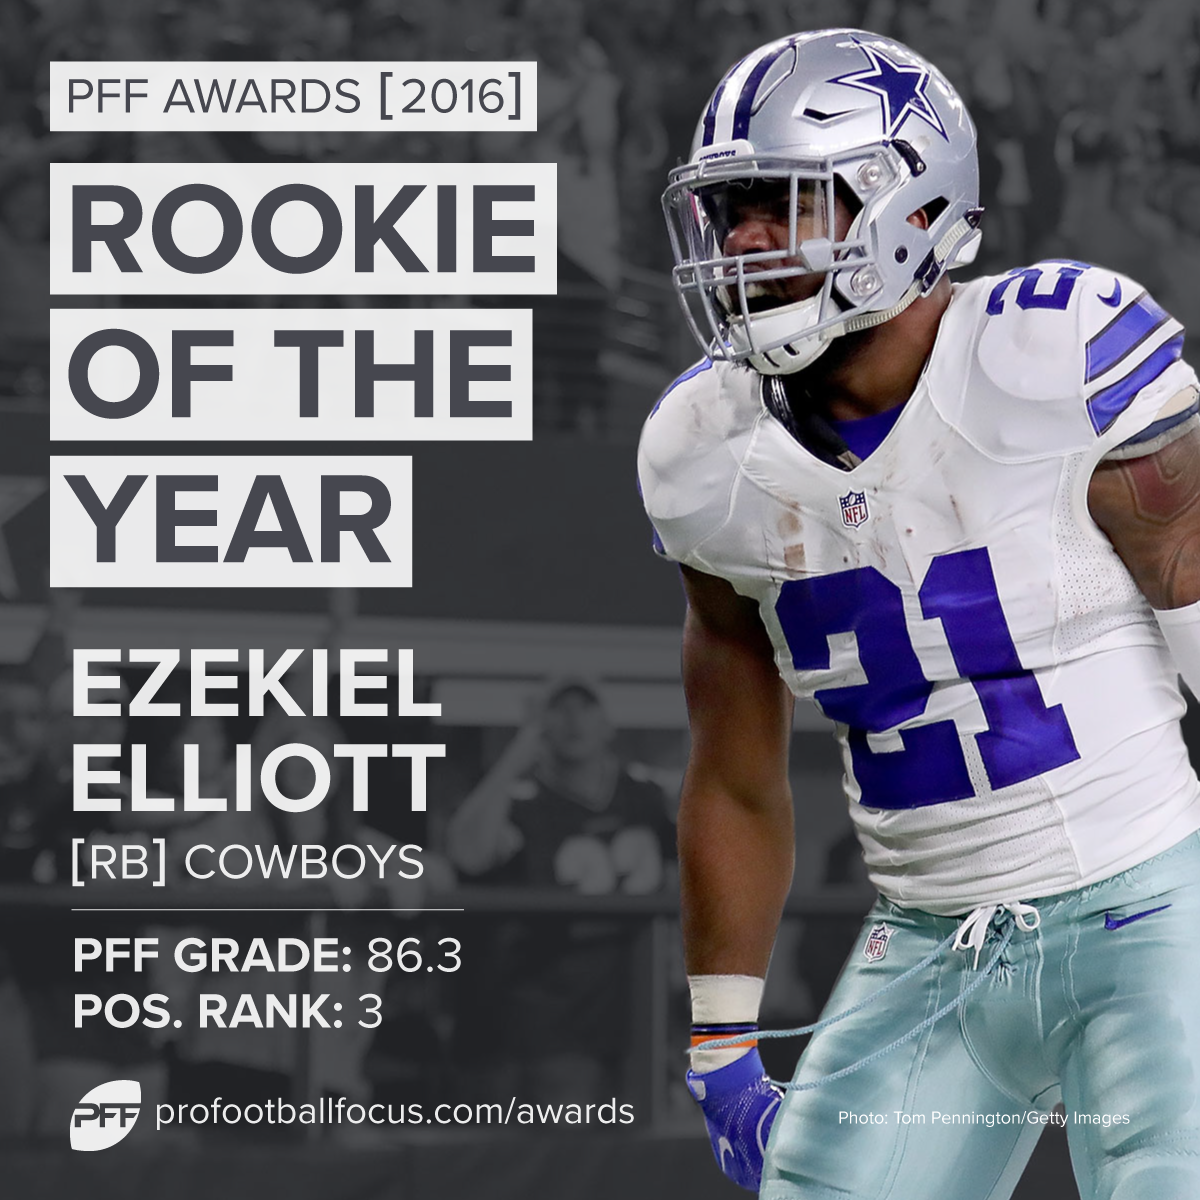 Rookie of the Year: Ezekiel Elliott